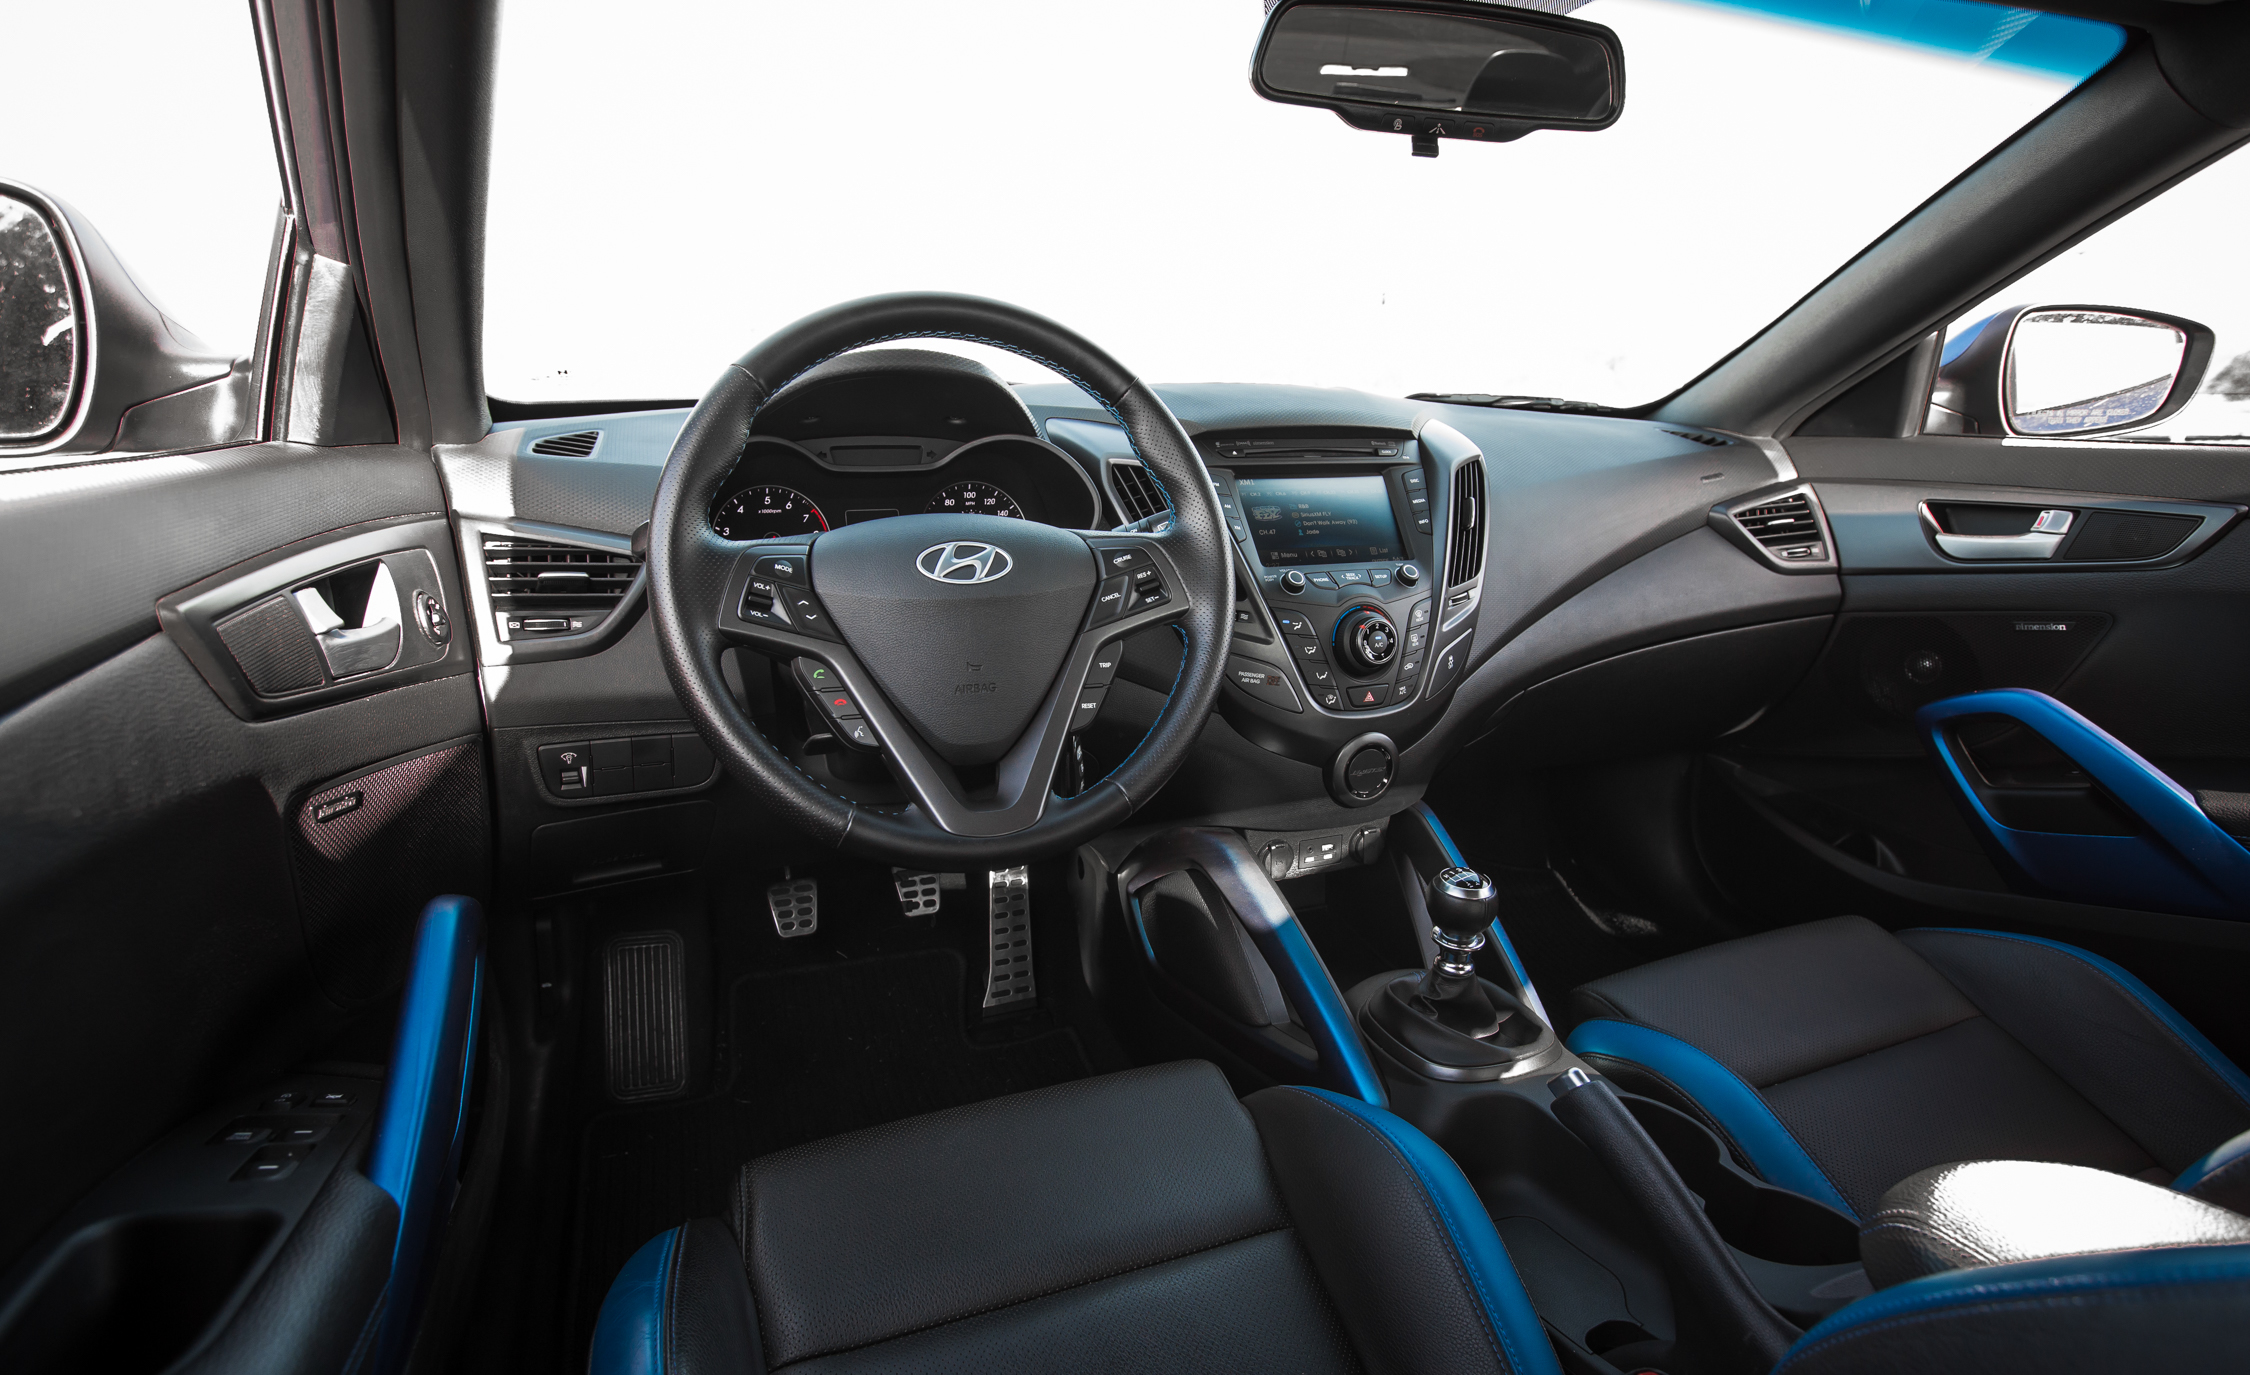 2016 Hyundai Veloster Turbo Rally Edition Interior Cockpit